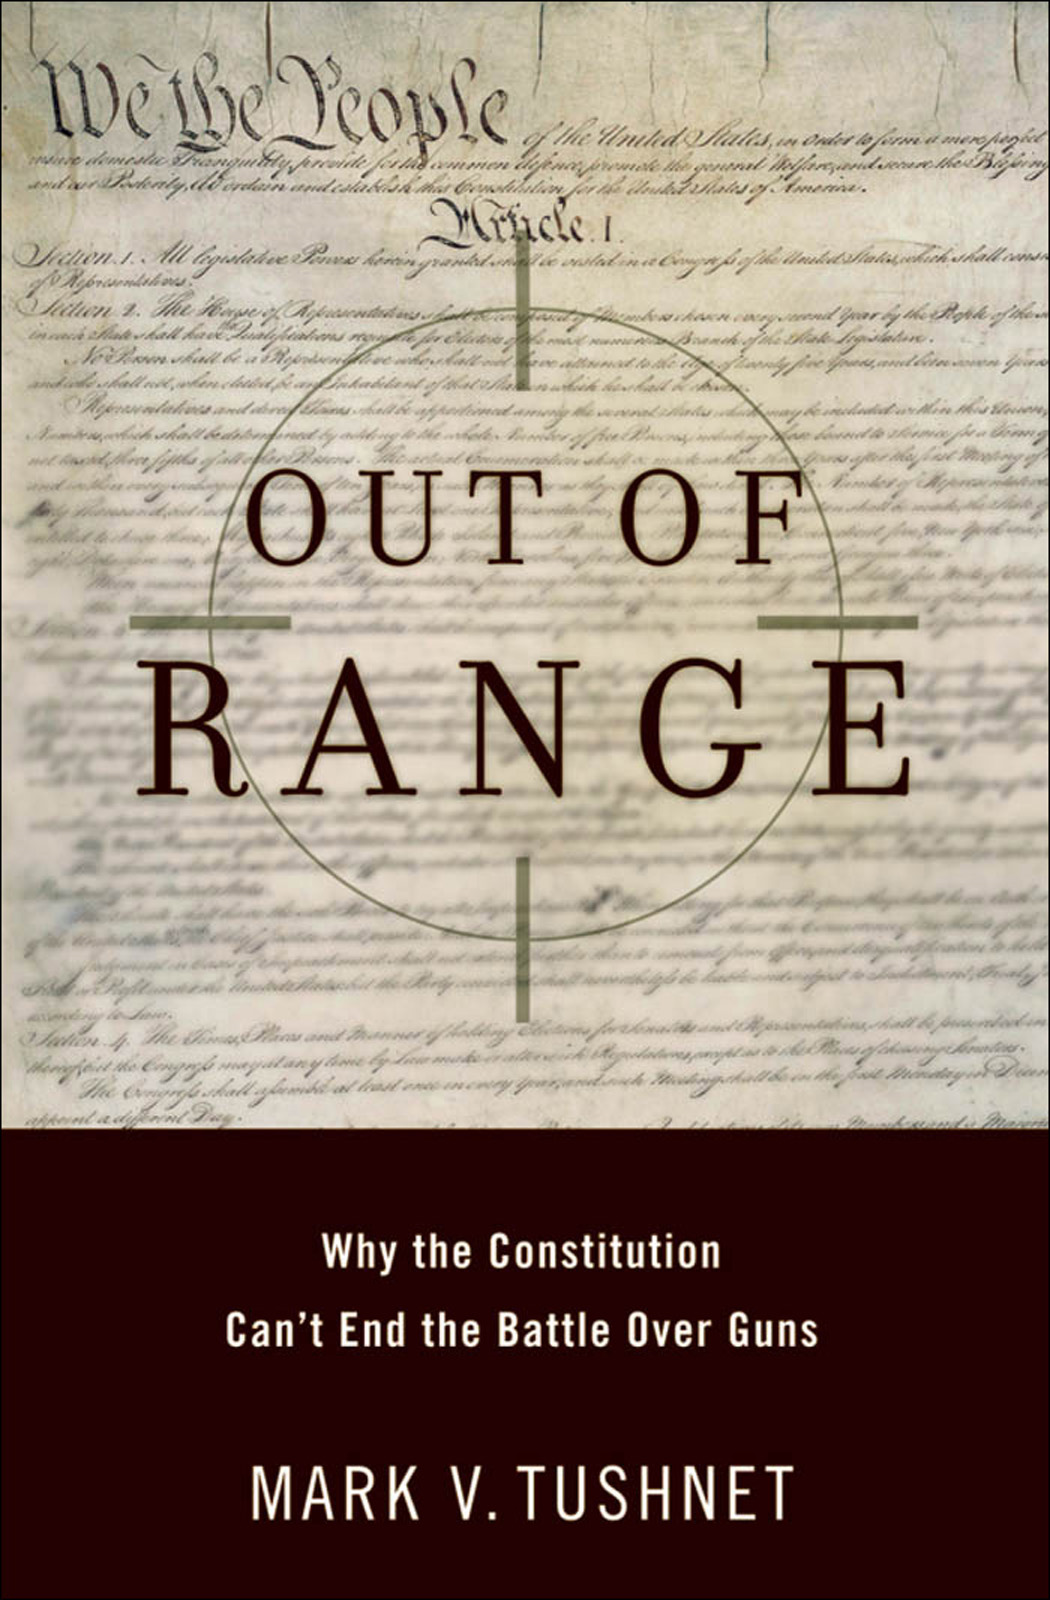 Out of Range:Why the Constitution Can't End the Battle over Guns